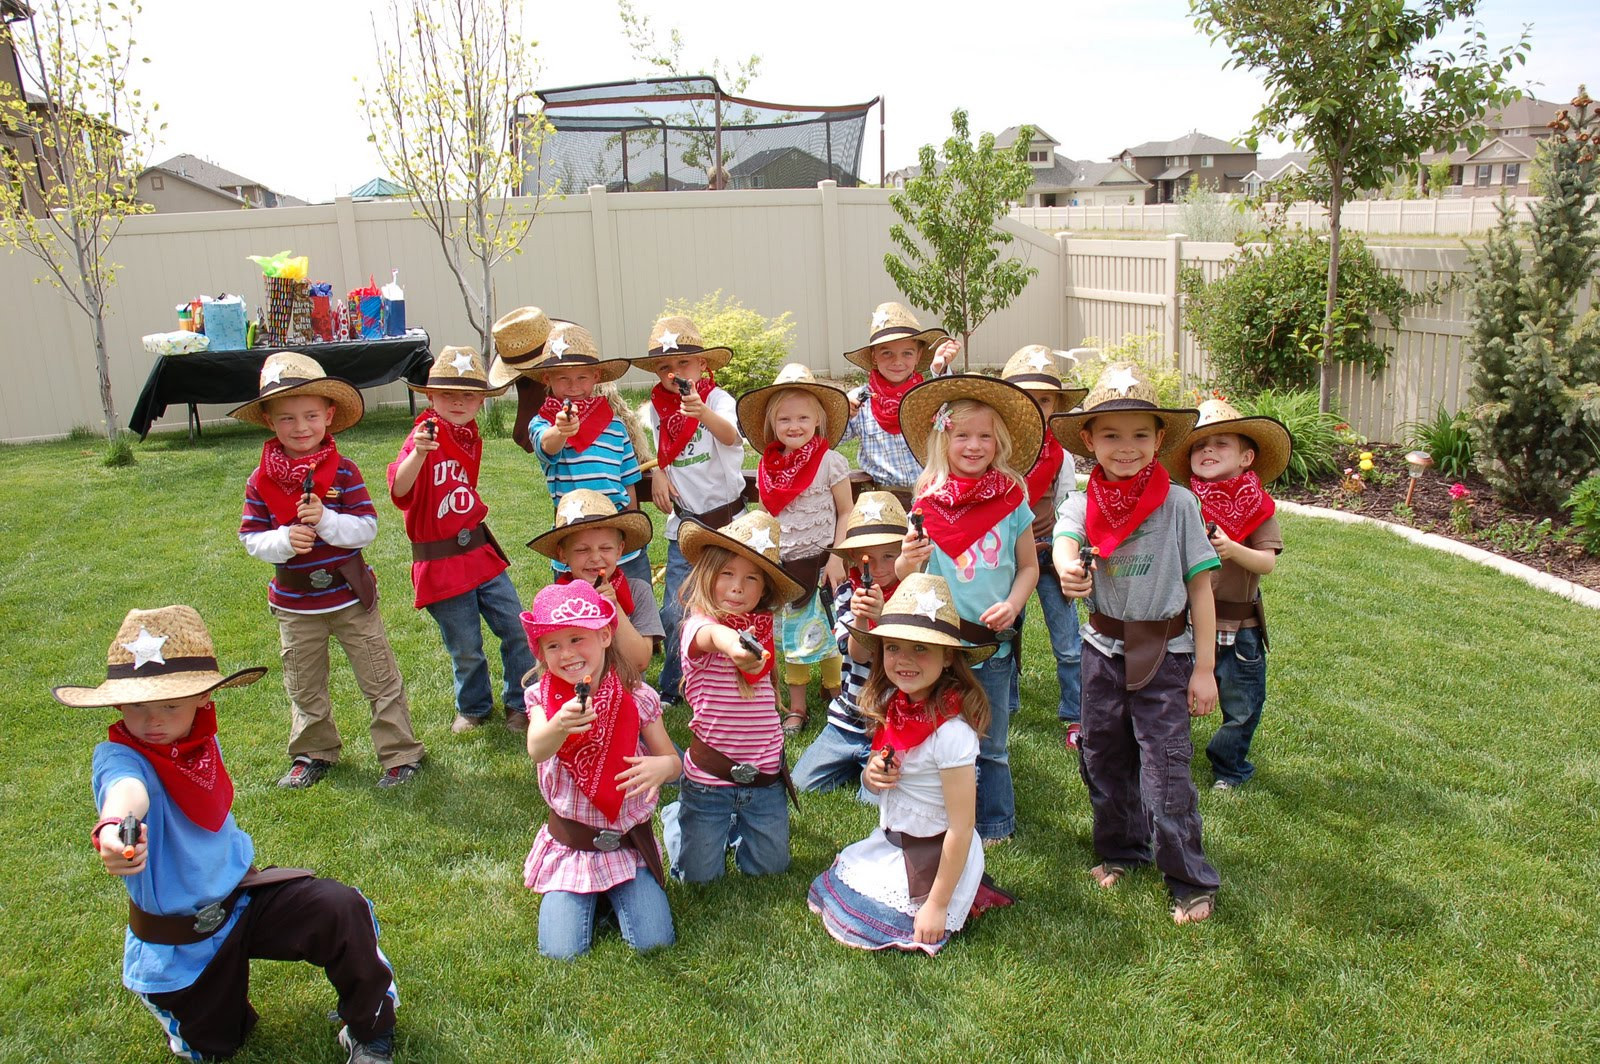 Western Theme Kids Party  restlessrisa Cowboy Party Games & Presents